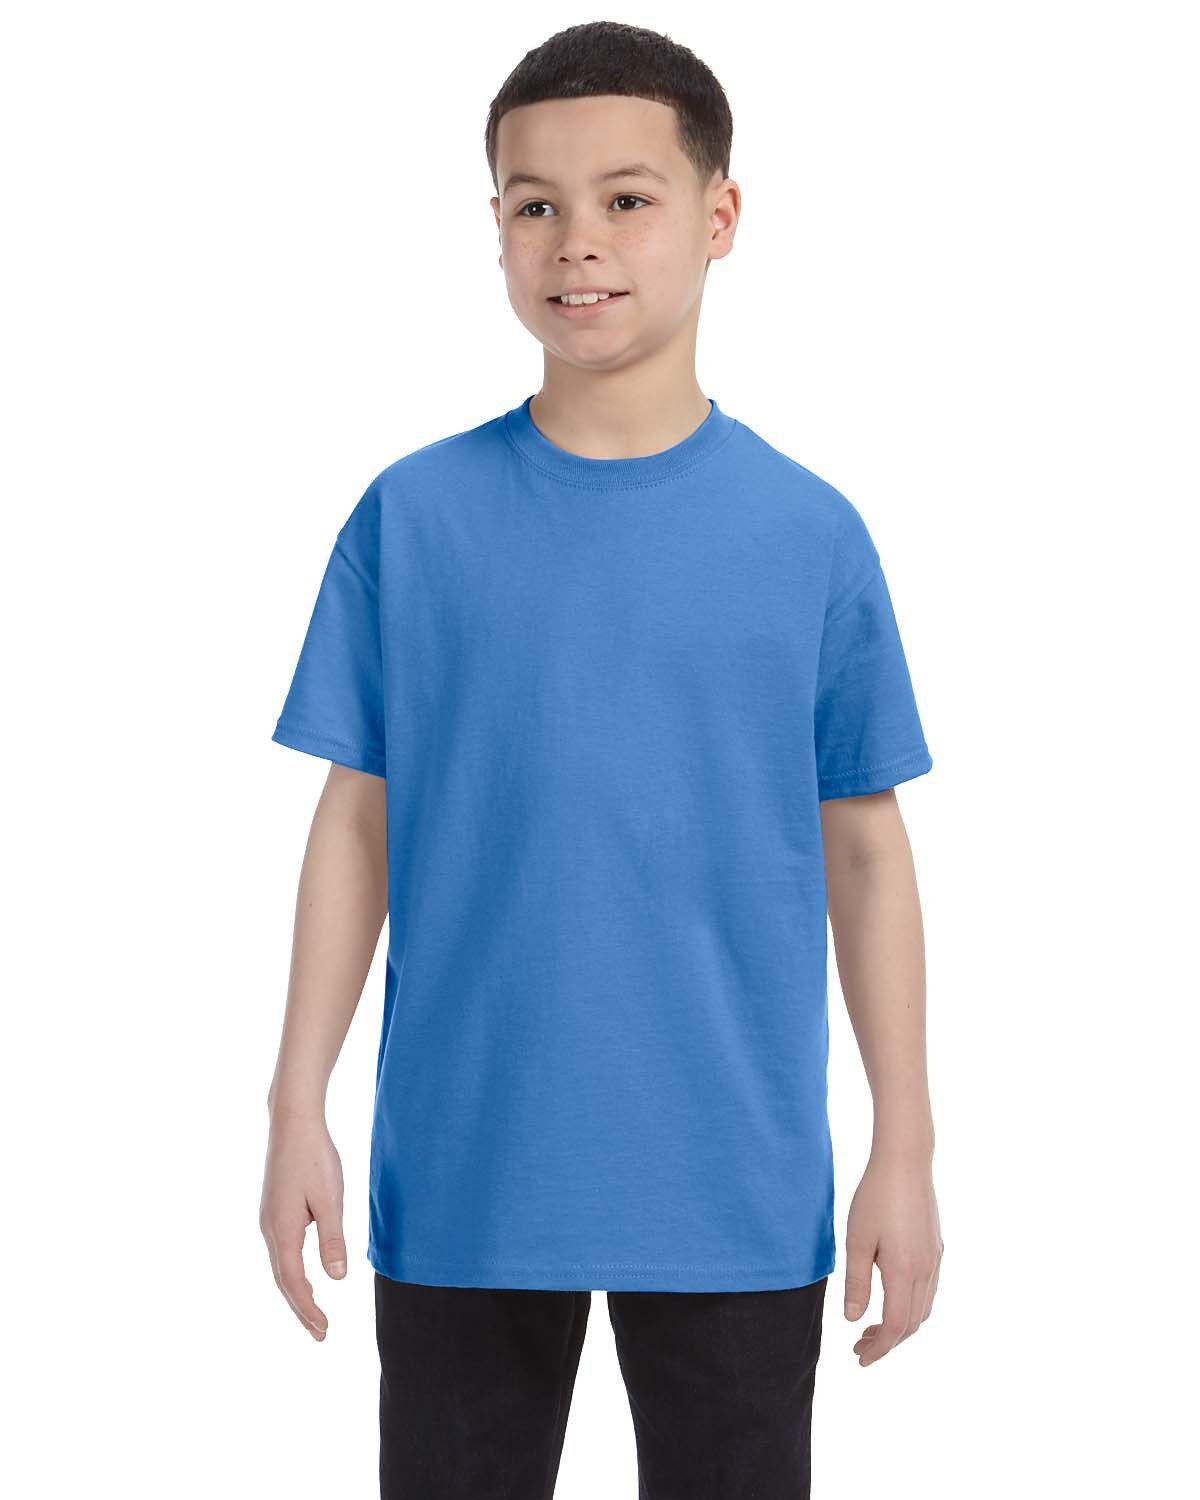 Jerzees Youth DRI-POWER® ACTIVE T-Shirt COLUMBIA BLUE